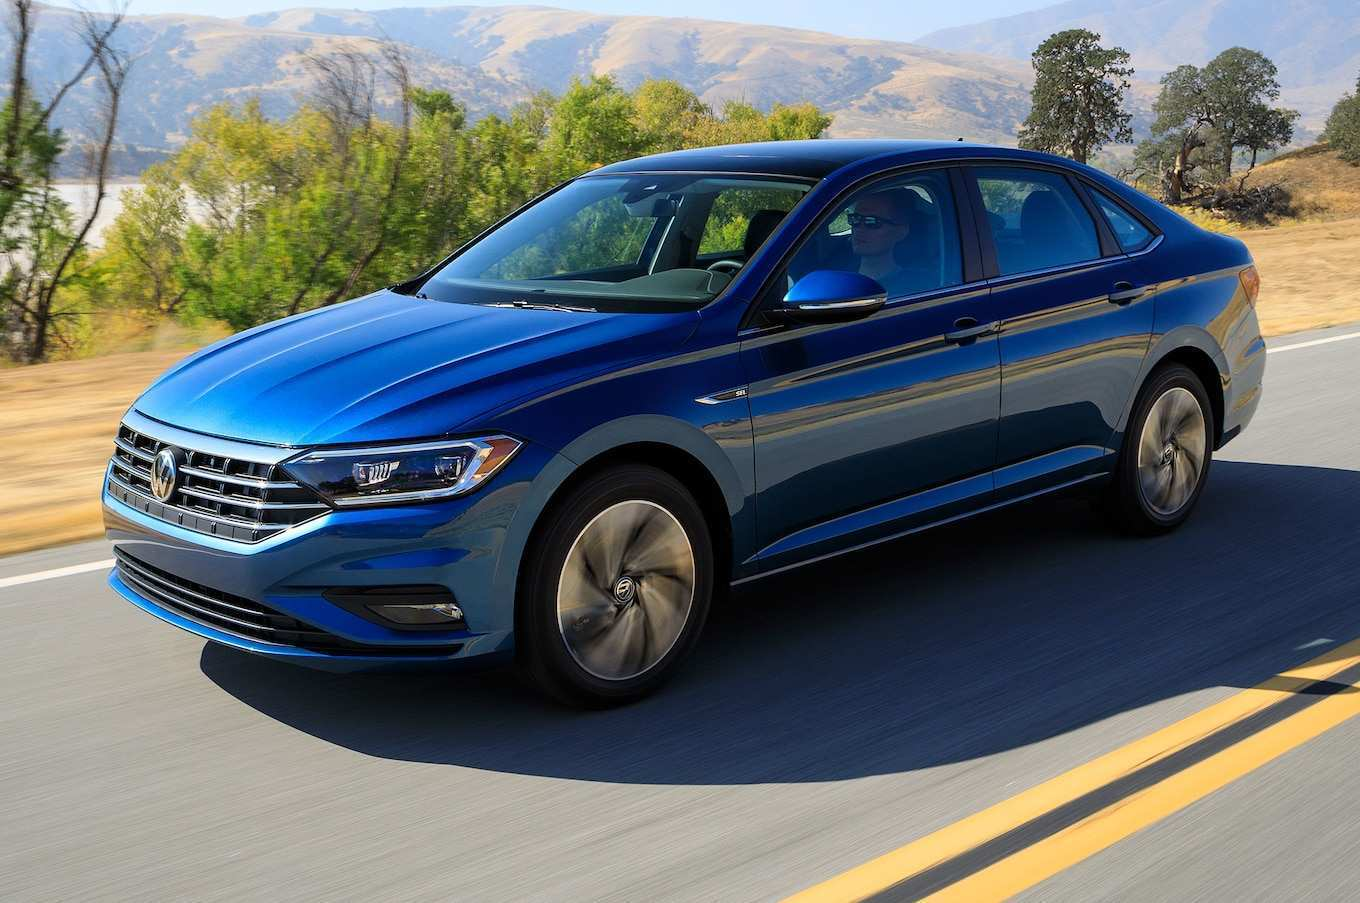 62 Gallery of New Volkswagen Jetta Gli 2019 Redesign And Concept Configurations with New Volkswagen Jetta Gli 2019 Redesign And Concept